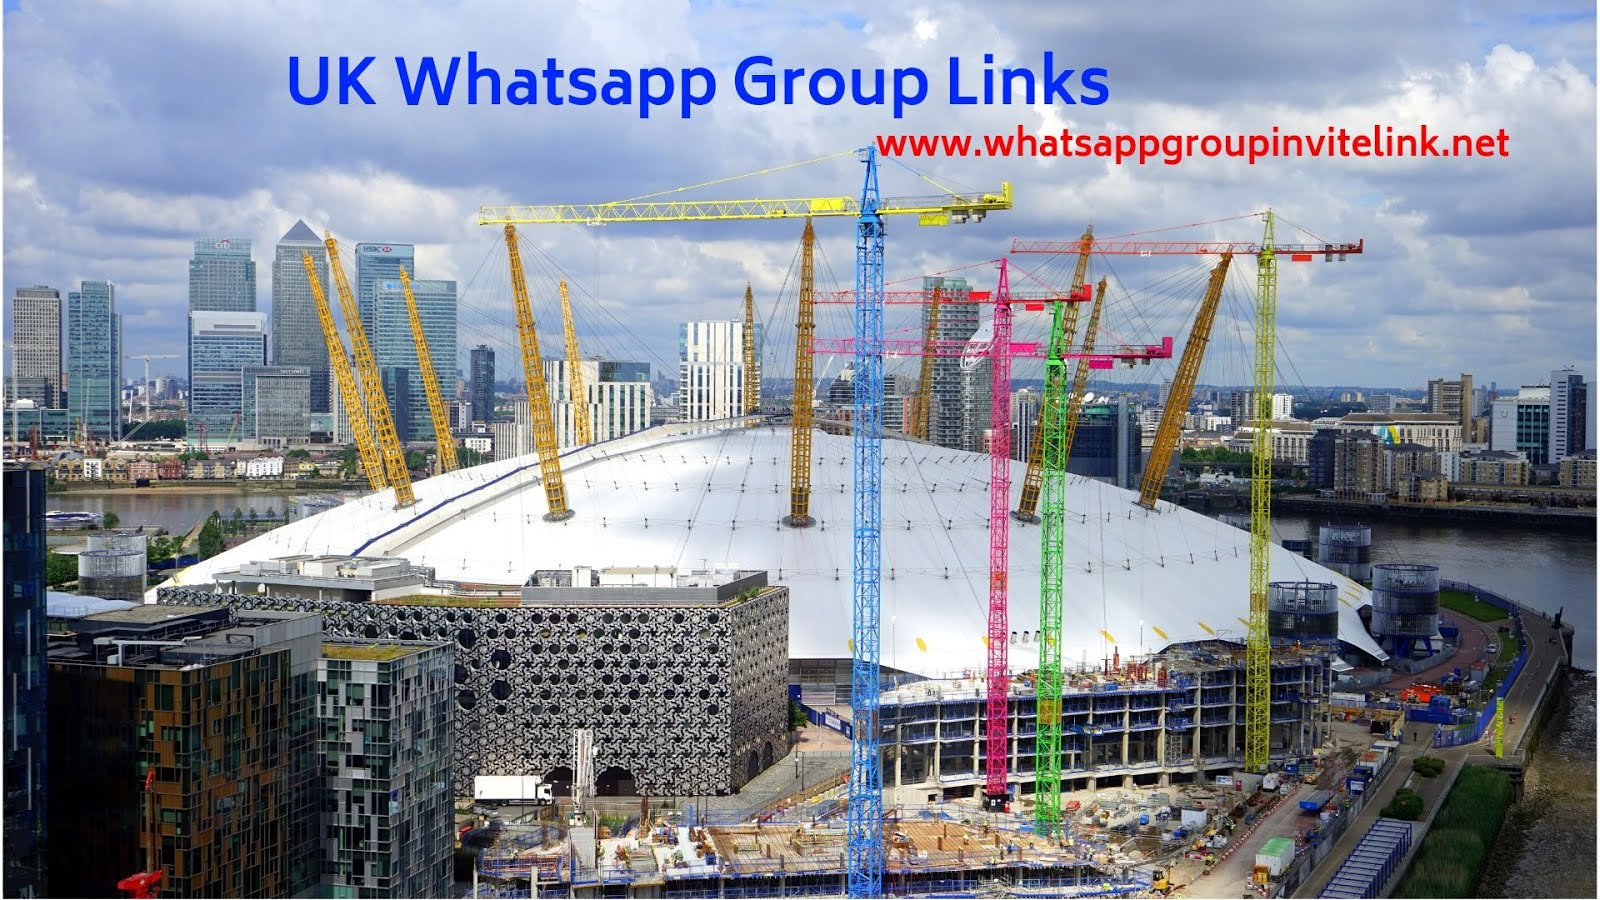 Whatsapp Group Invite Links: UK Whatsapp Group Links